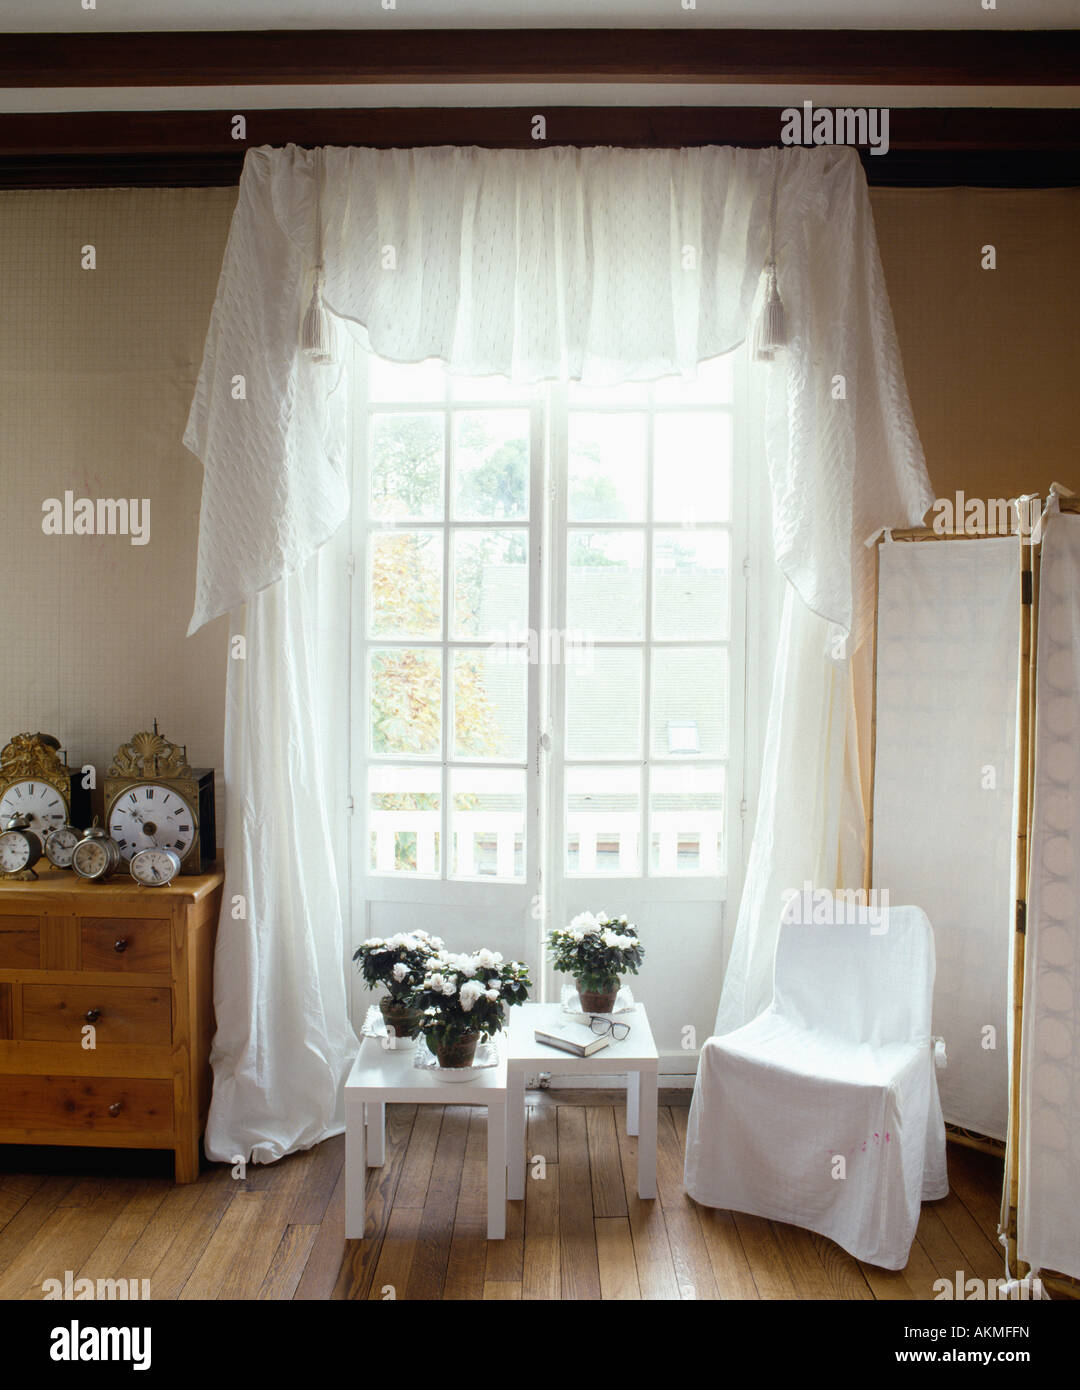 Small white table and white loosecover on chair in front of French doors with white voile curtains Stock Photo